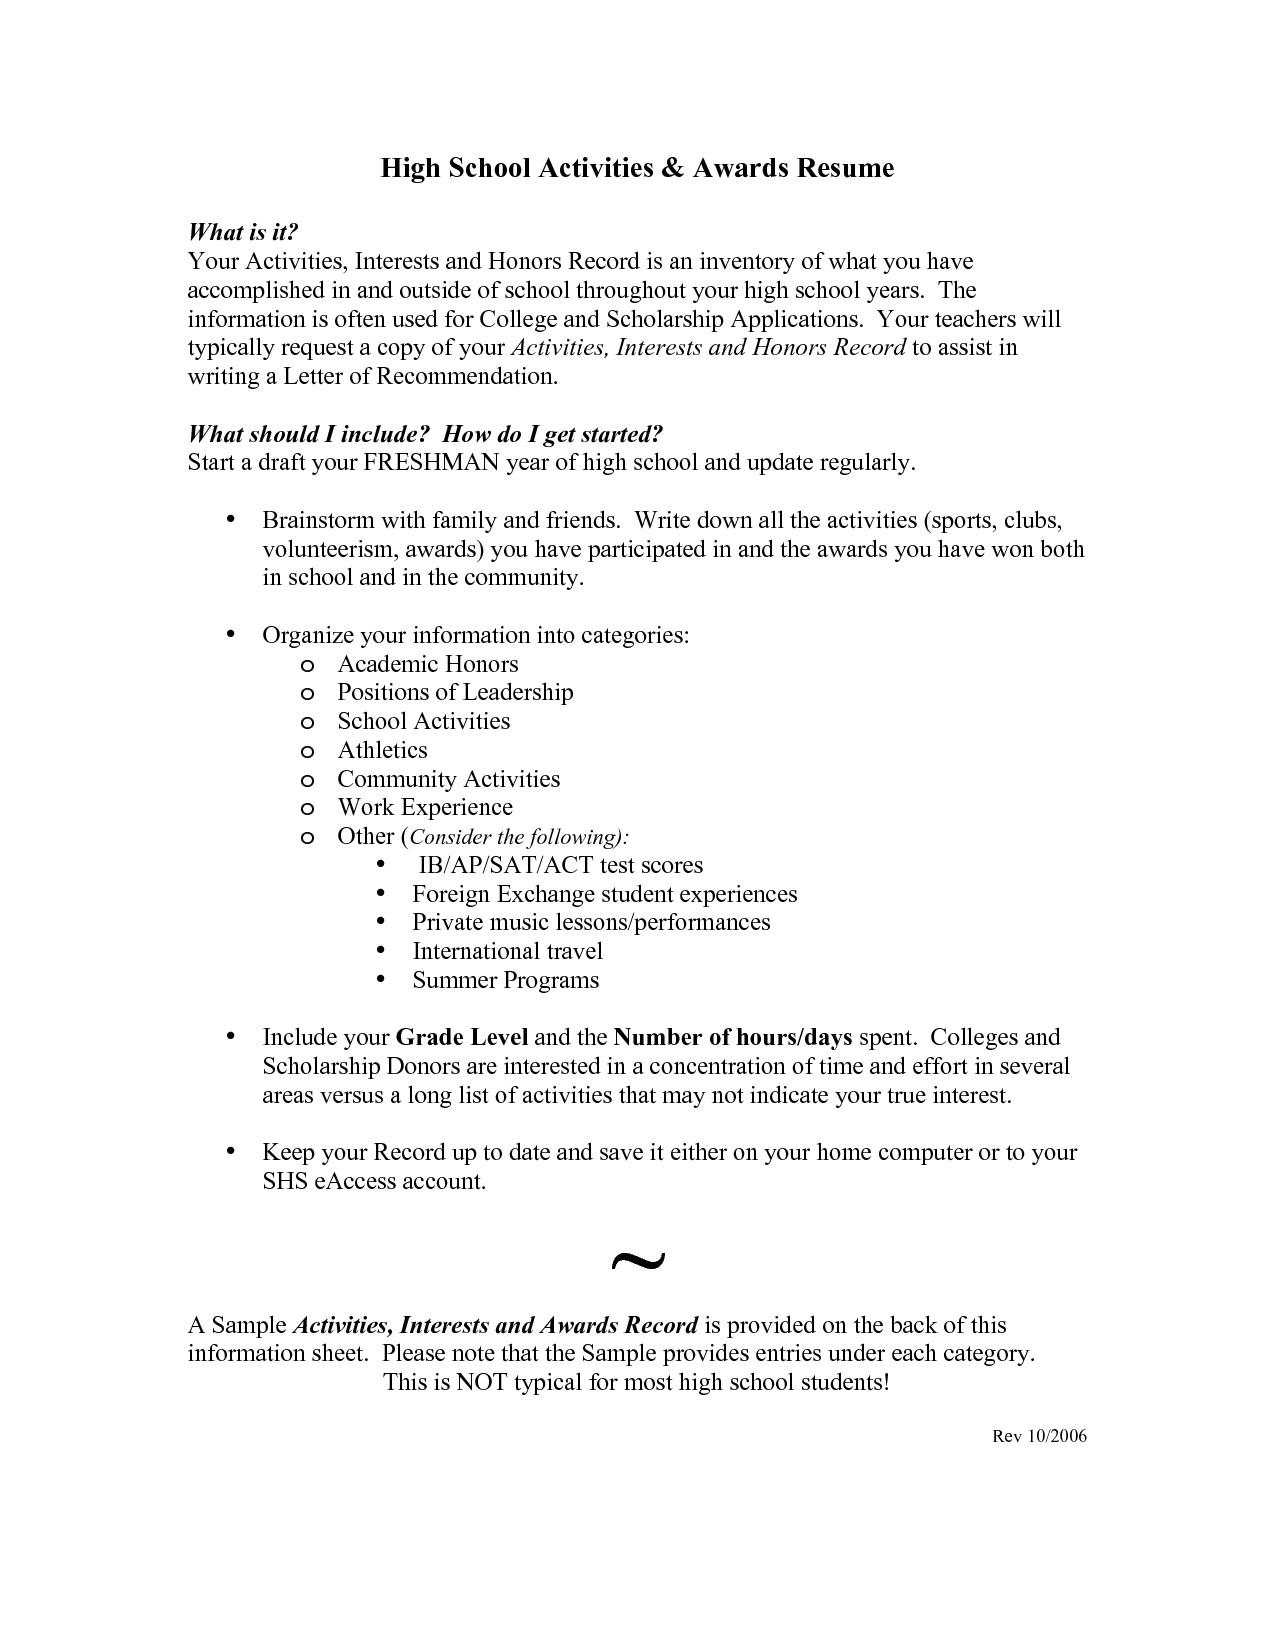 sample resume for high school students applying for scholarships